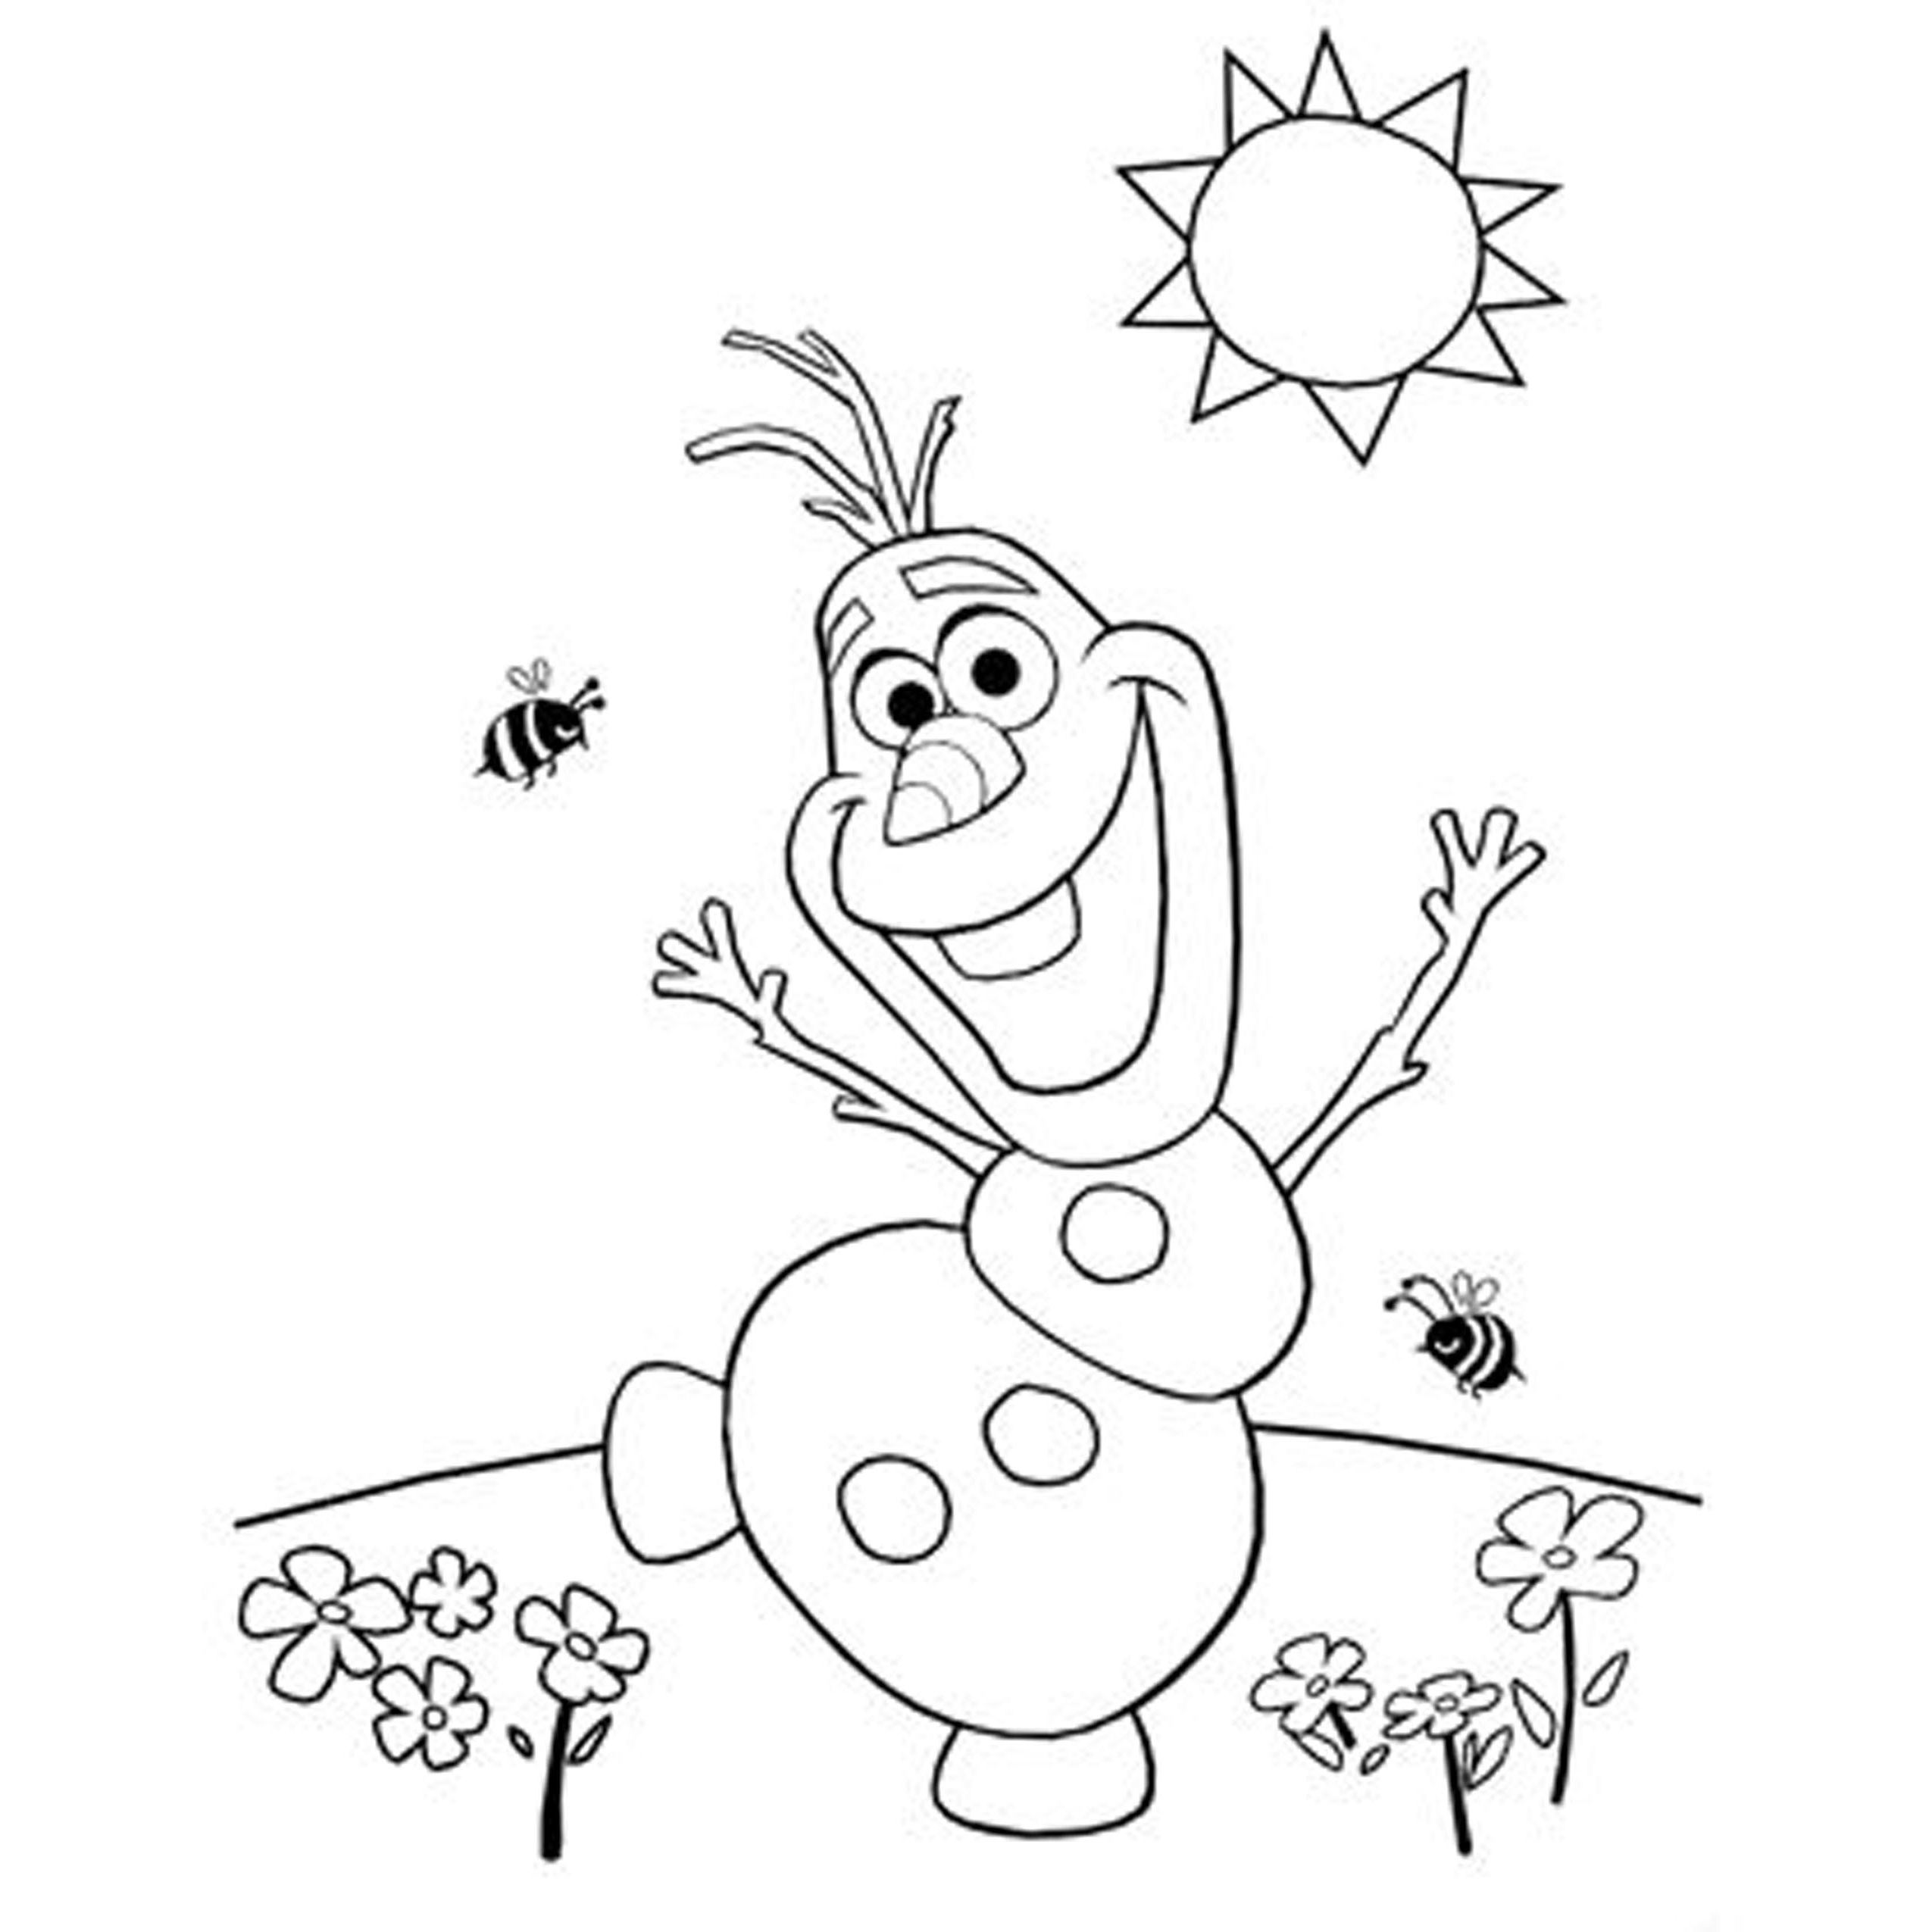 olaf coloring frozens olaf coloring pages best coloring pages for kids olaf coloring 1 3